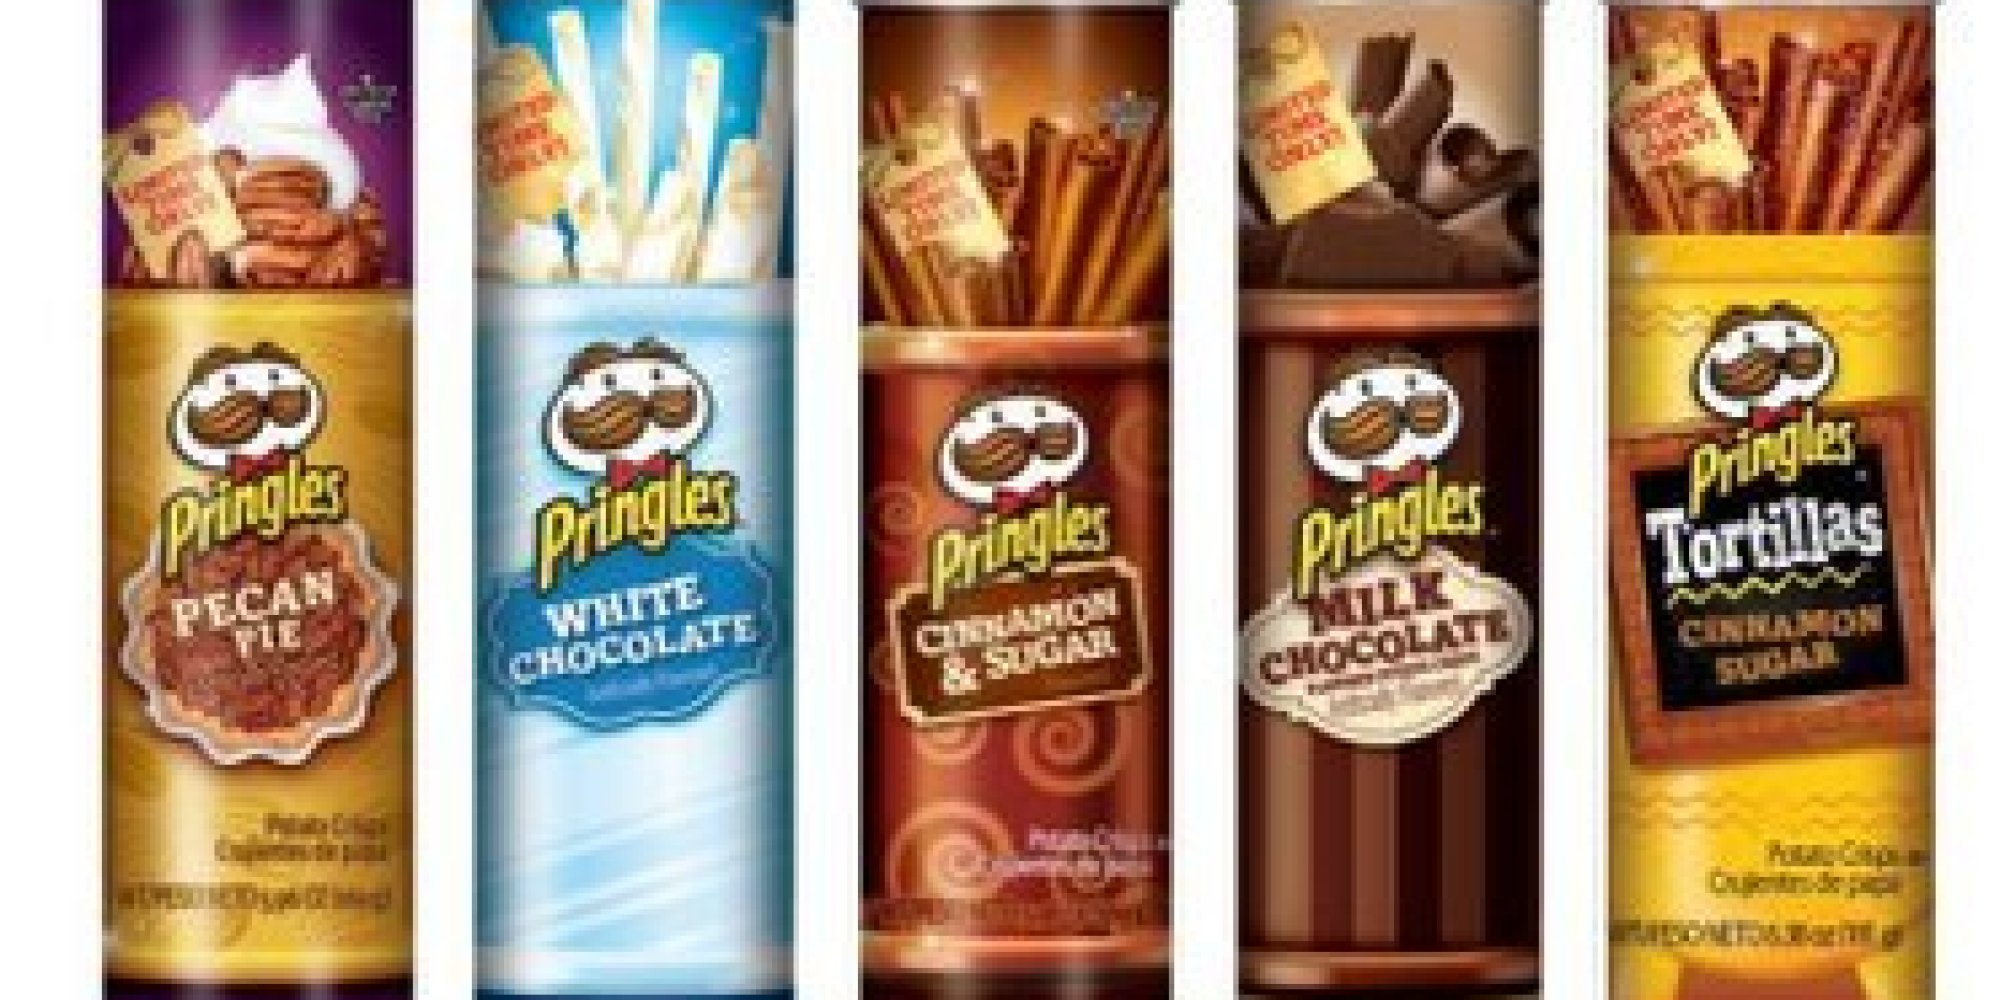 pringles new holiday flavor chips n